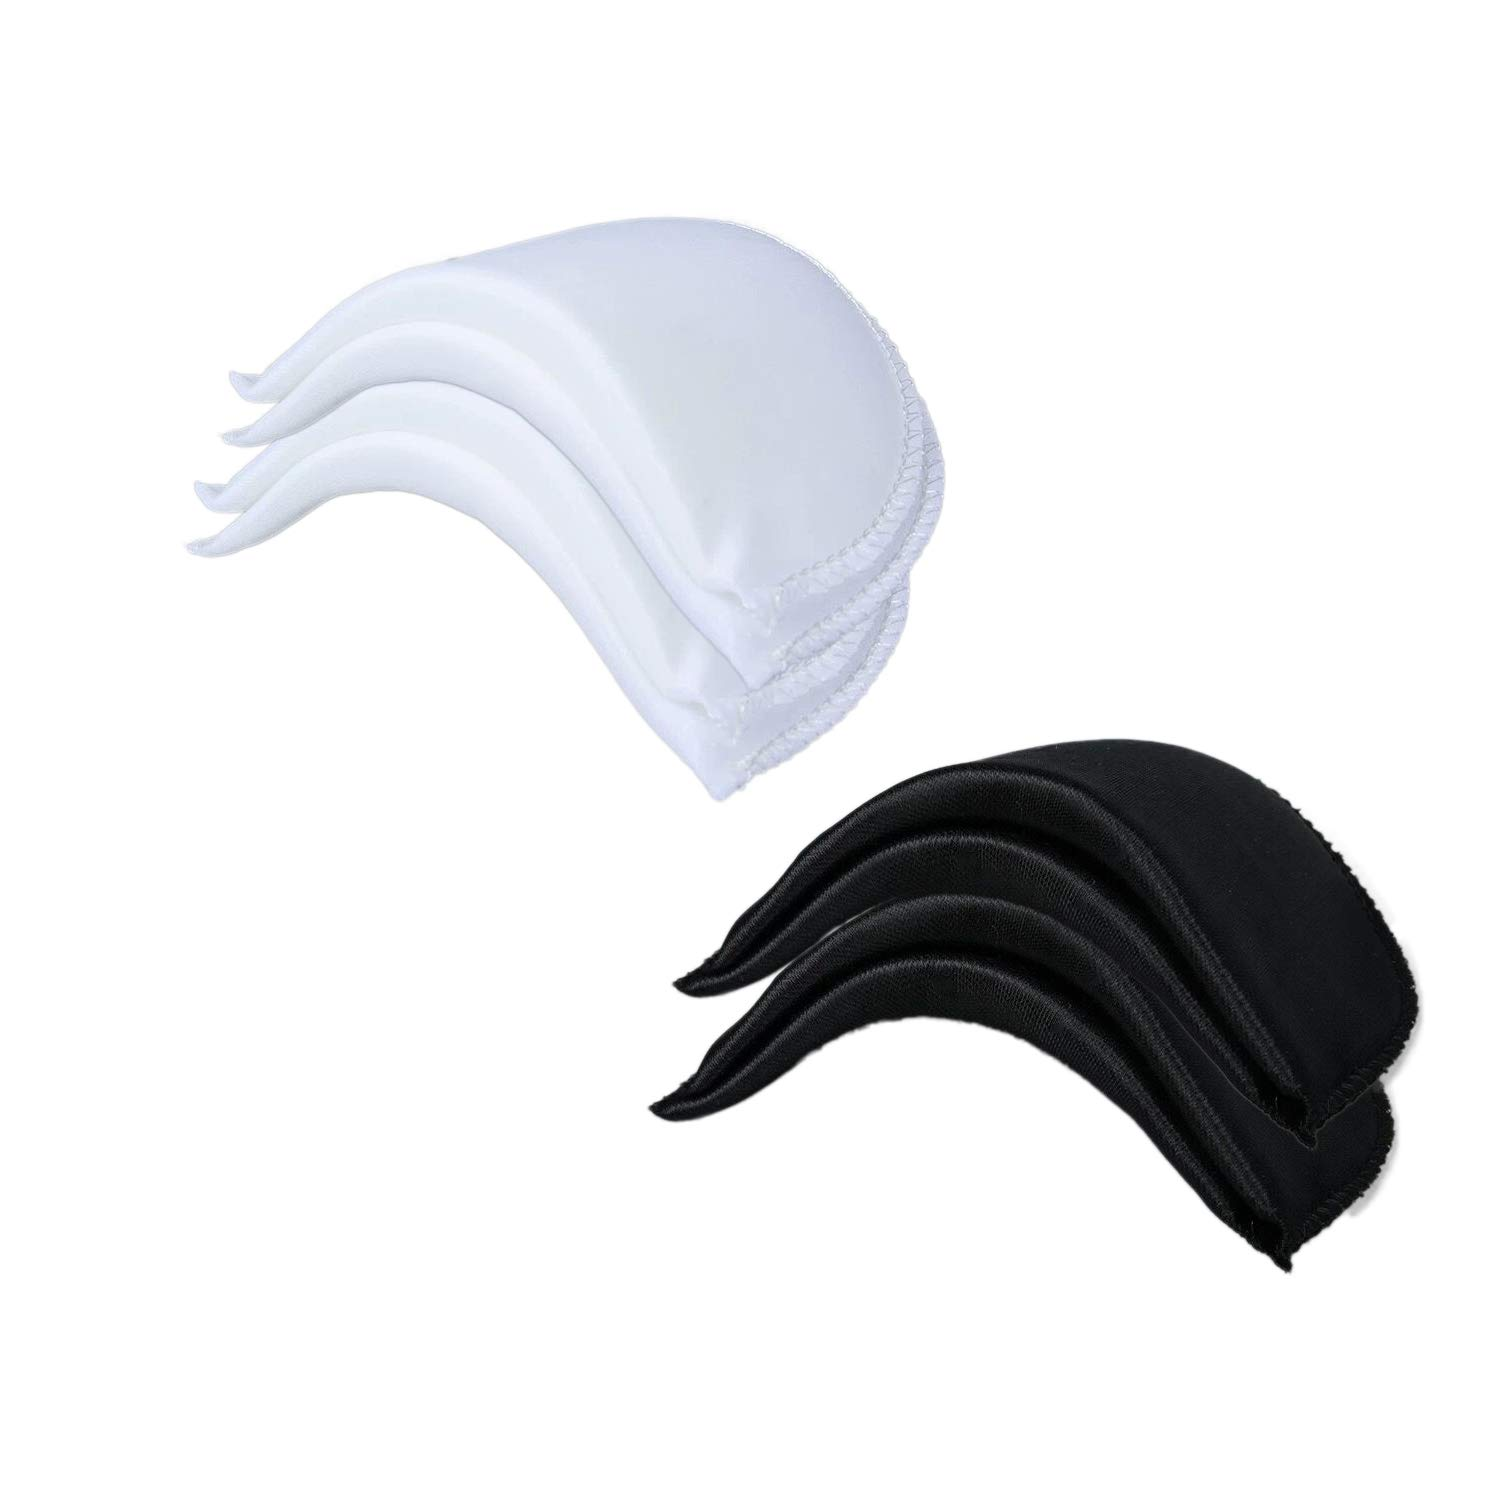 "B07L2MCMDF Chris.W 4 Pairs 1/2"" Covered Set-in Shoulder Pads Sewing Foam Pads for Blazer T-Shirt Clothes, Medium(2 Pairs White and 2 Pairs Black) 616U2BpjoIEL"